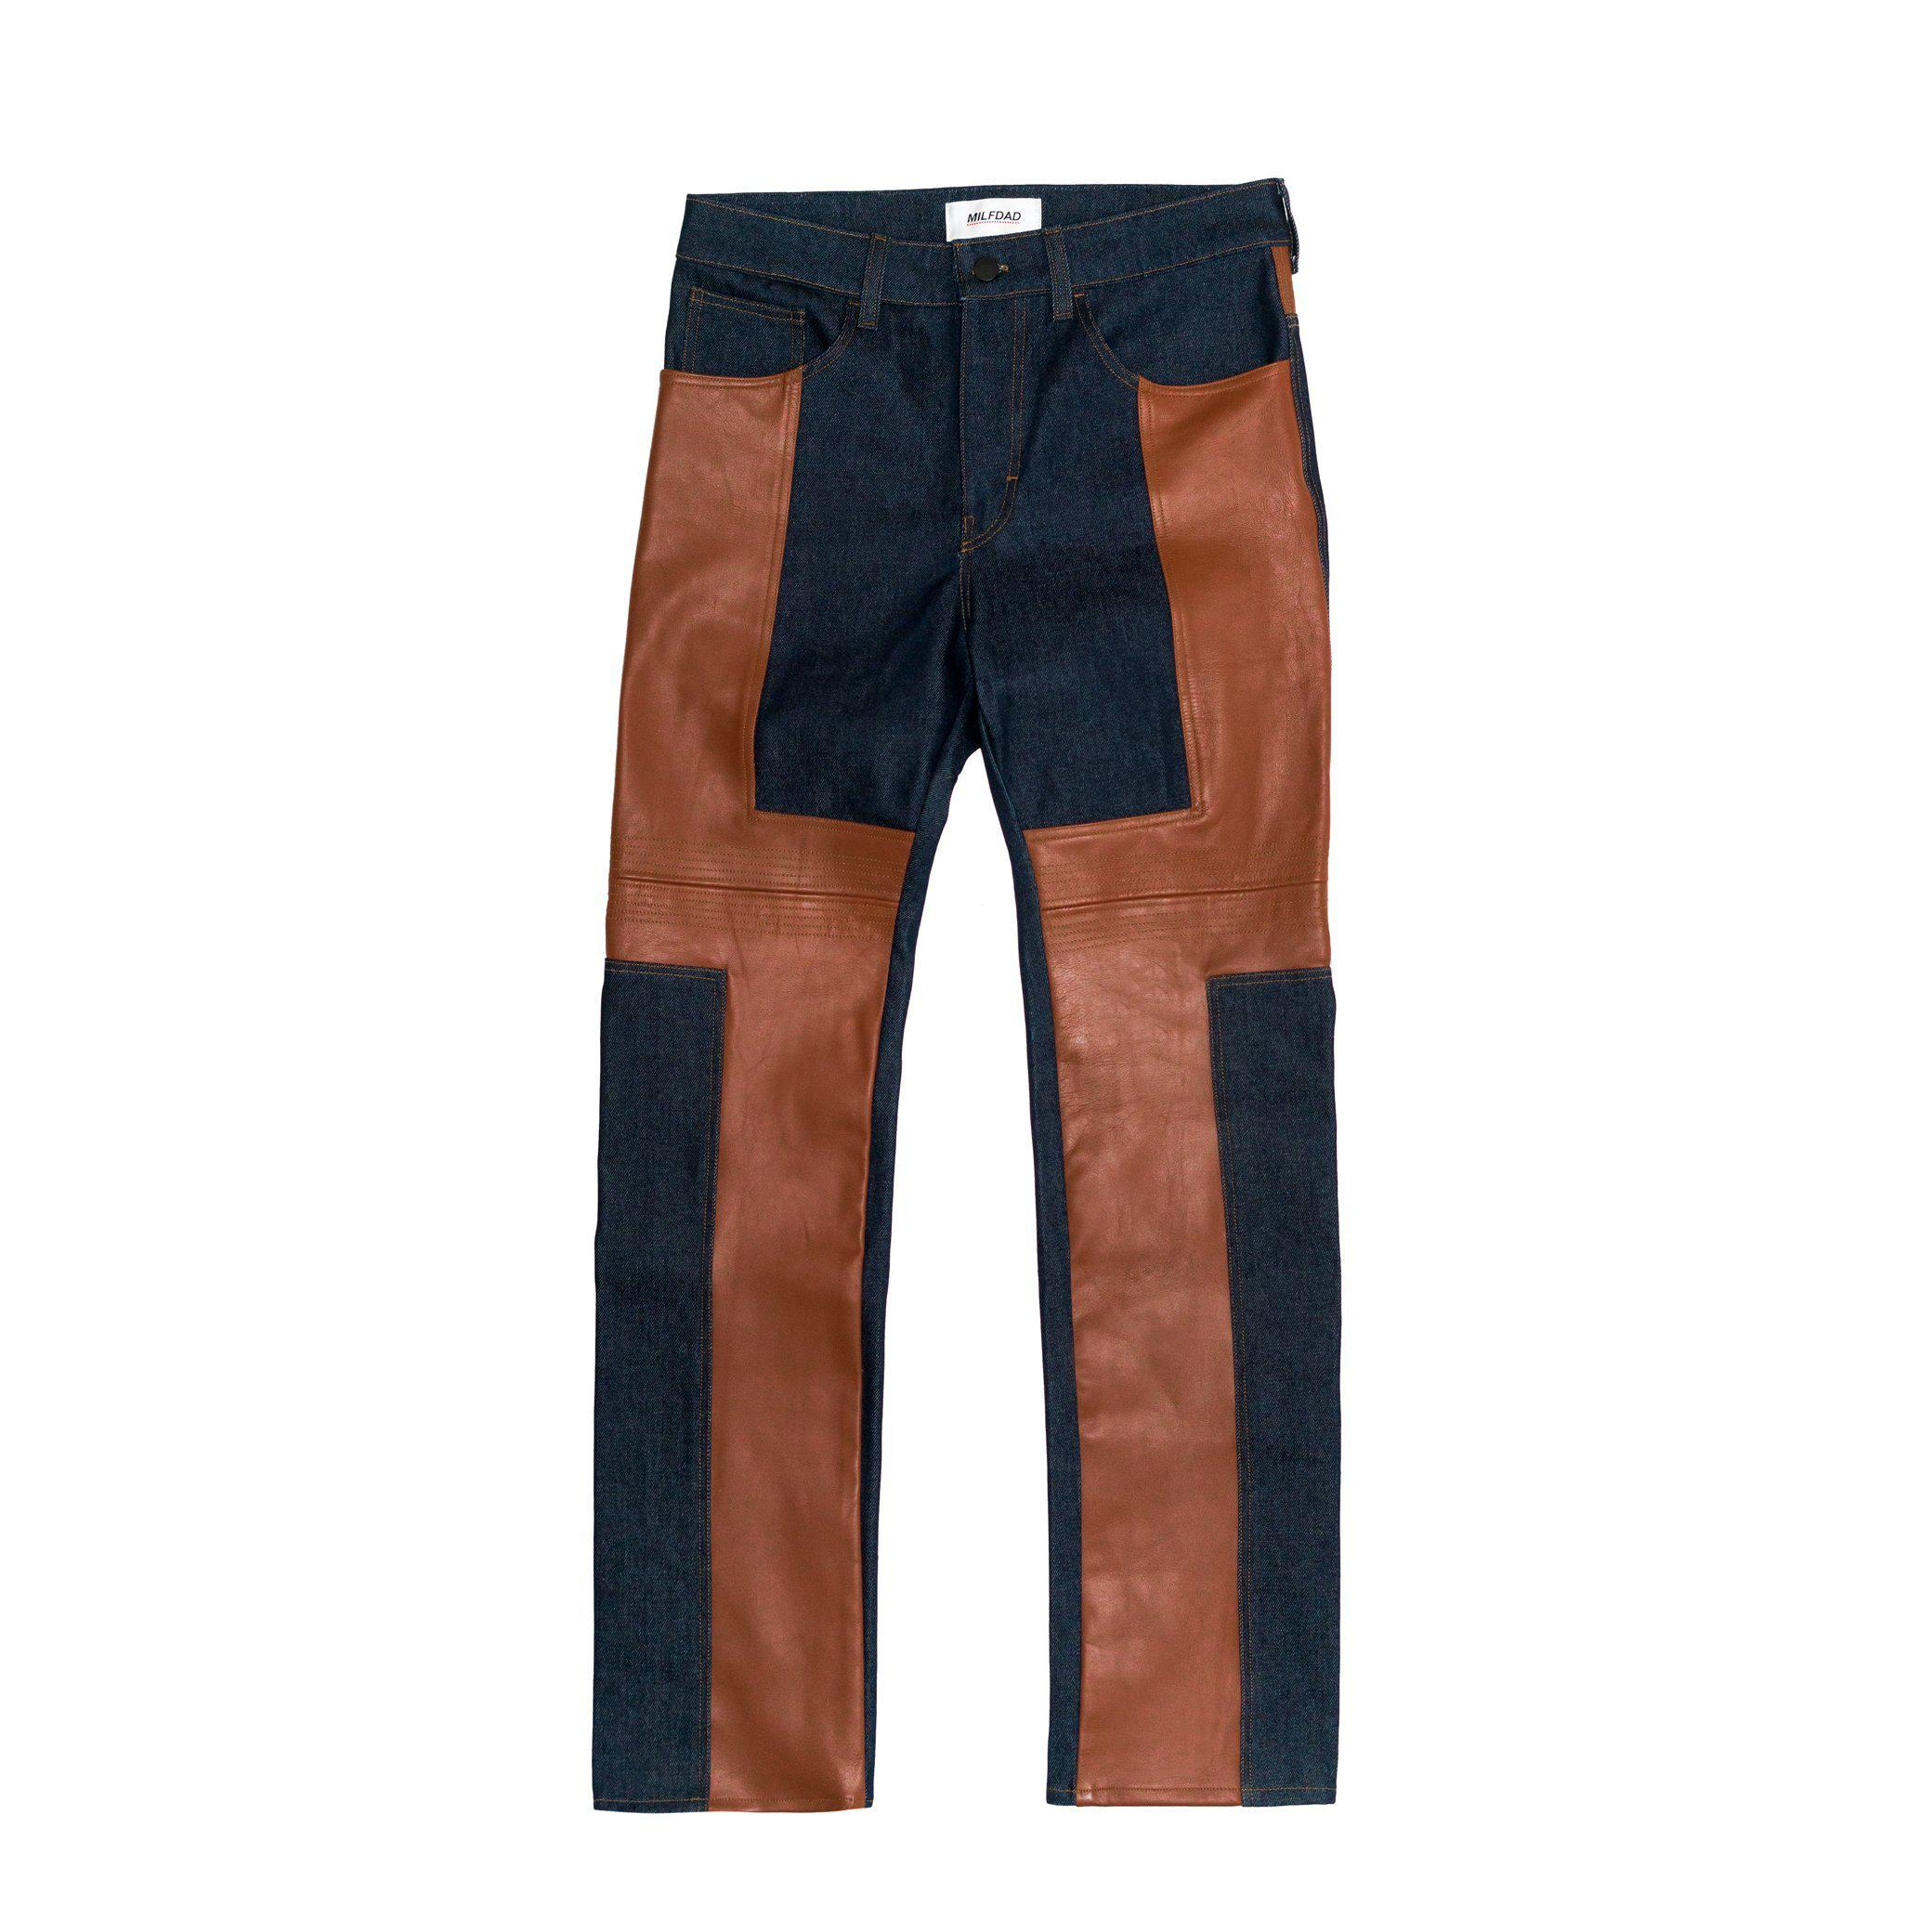 LEATHER DETAIL DENIM - INDIGO/BROWN (MADE TO ORDER)-MILFDAD